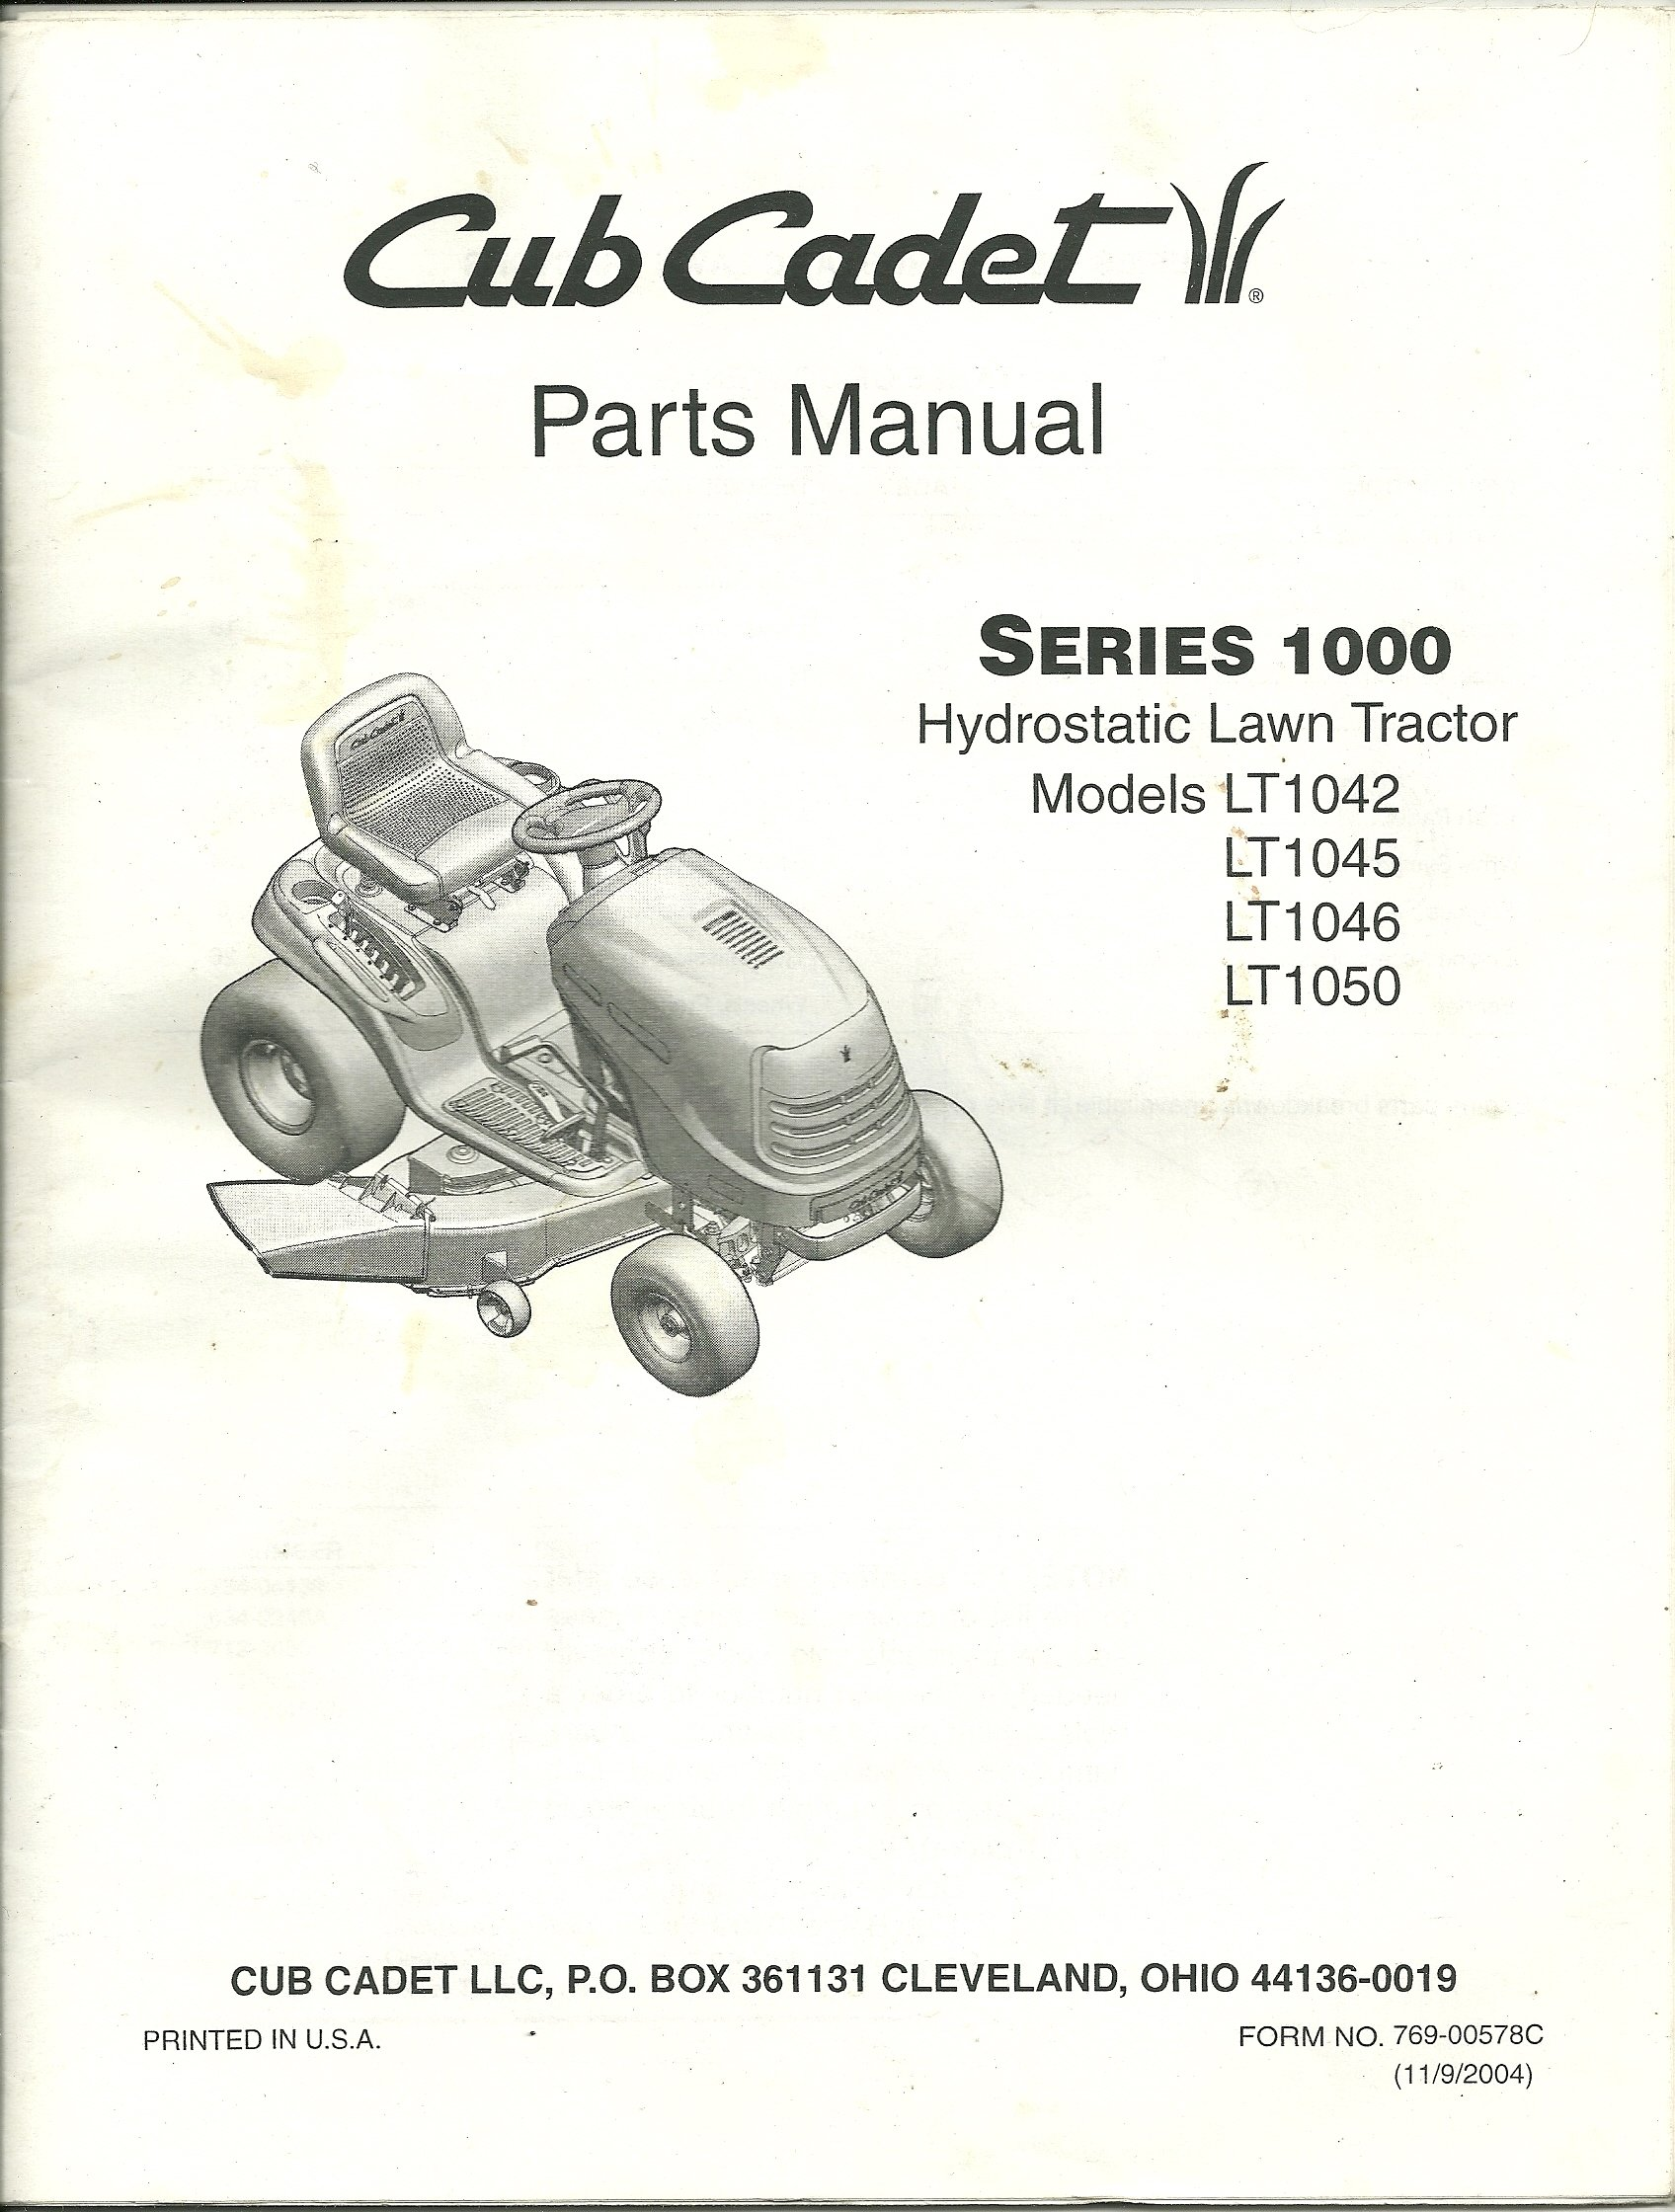 Cub Cadet Parts Manual Series 1000 Hydrostatic Lawn Tractor Models LT1042,  LT1045, LT1046, LT1050: Cub Cadet: Amazon.com: Books